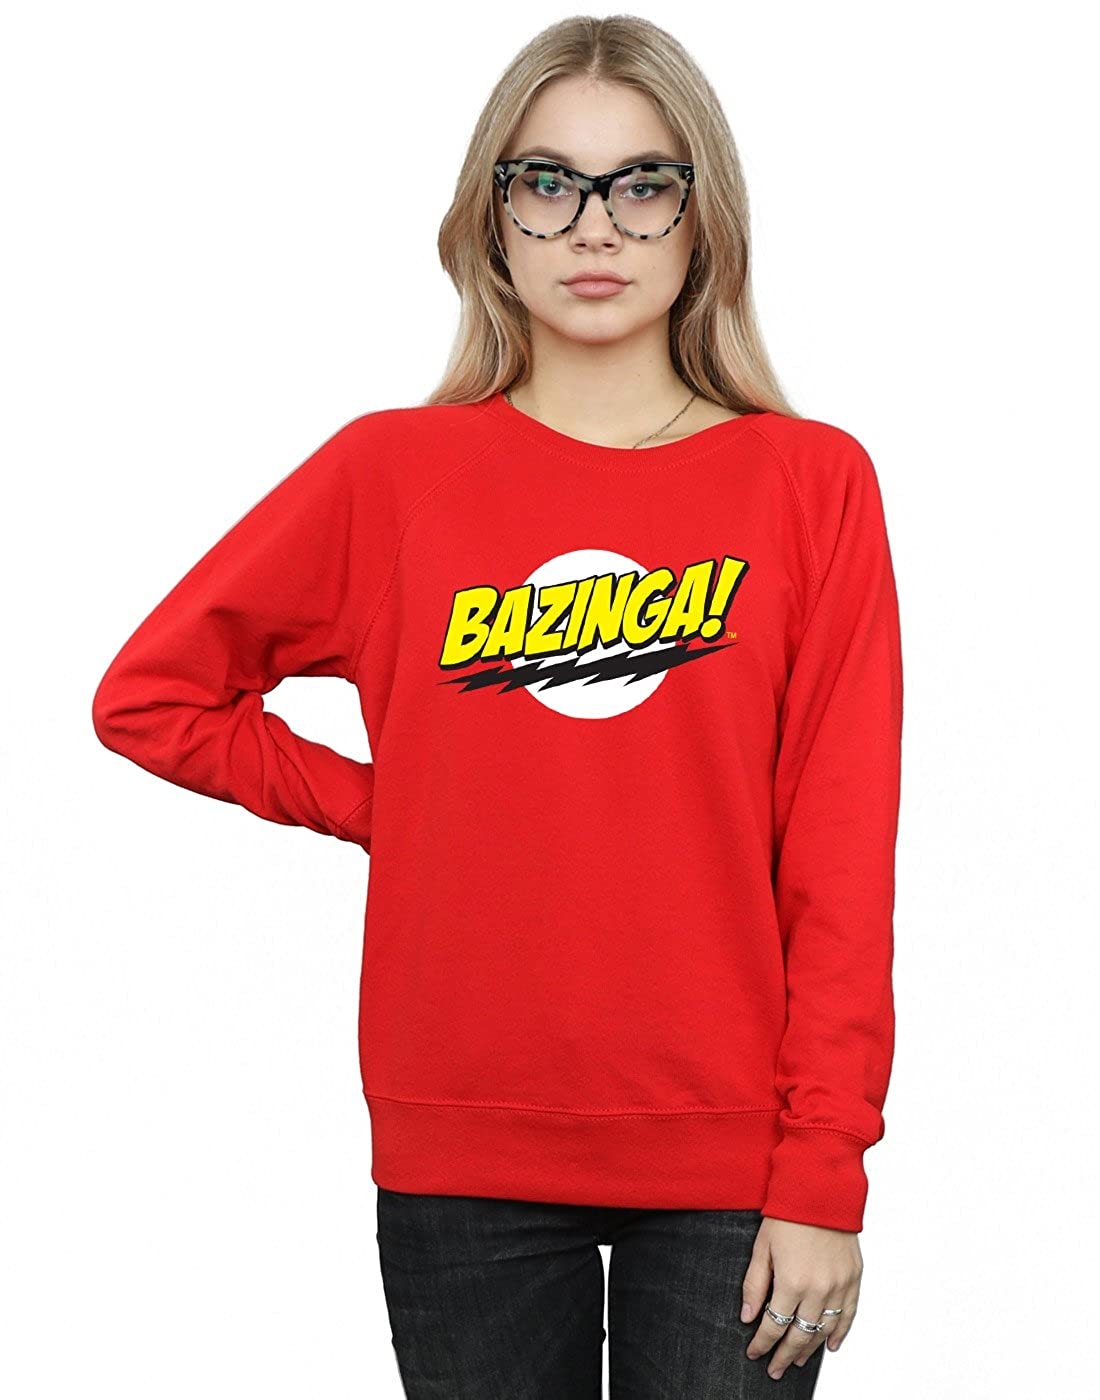 The Big Bang Theory Mujer Sheldon Bazinga Camisa De Entrenamiento